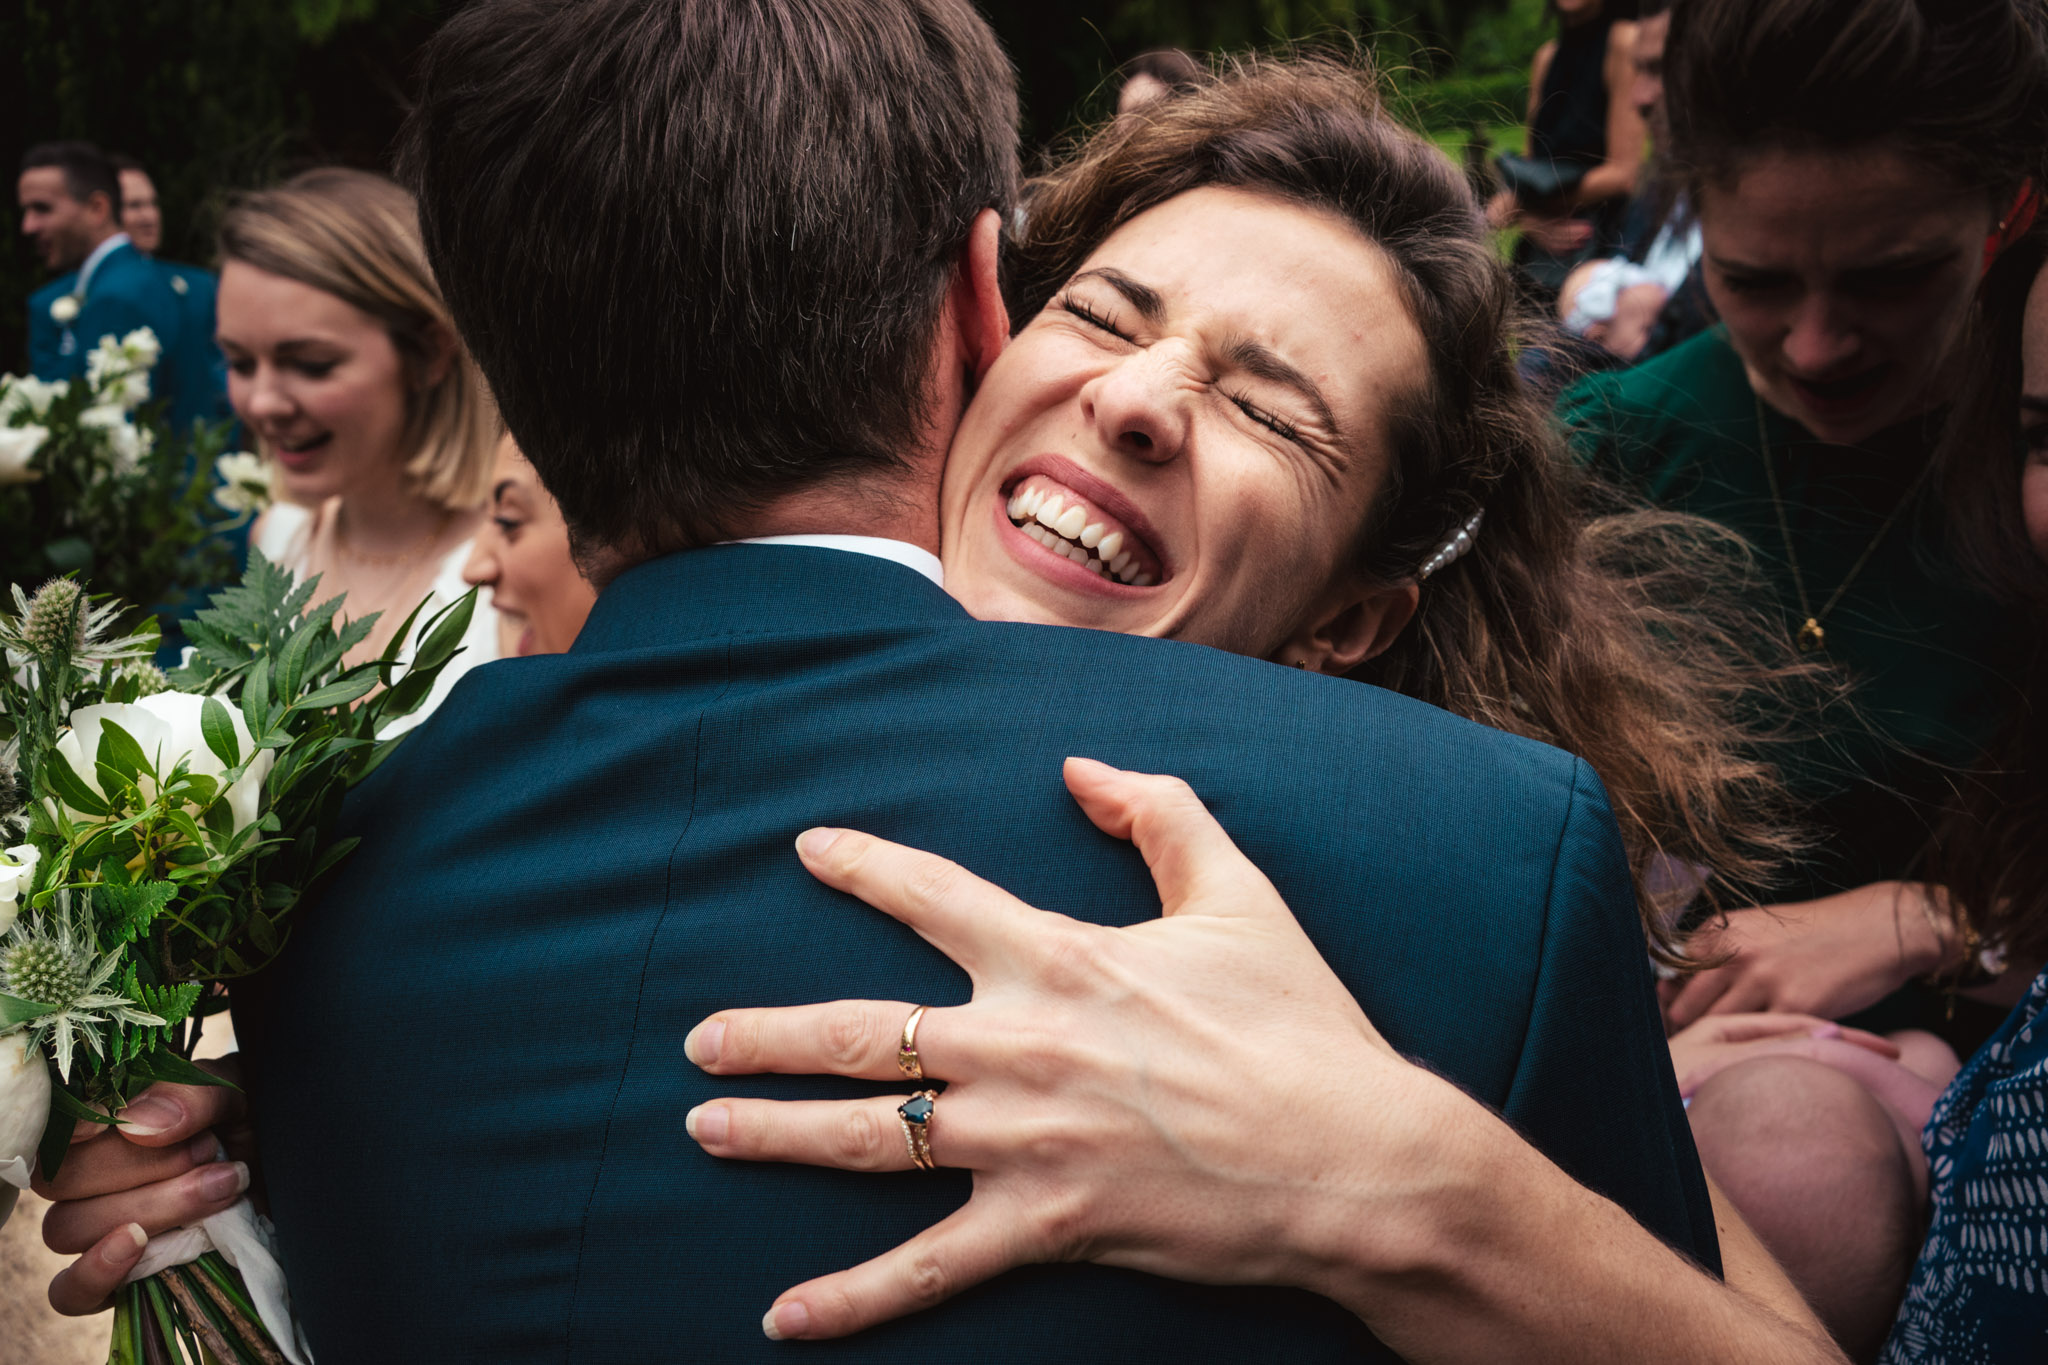 Big embrace for the groom - photo by Andrew Billington Photography